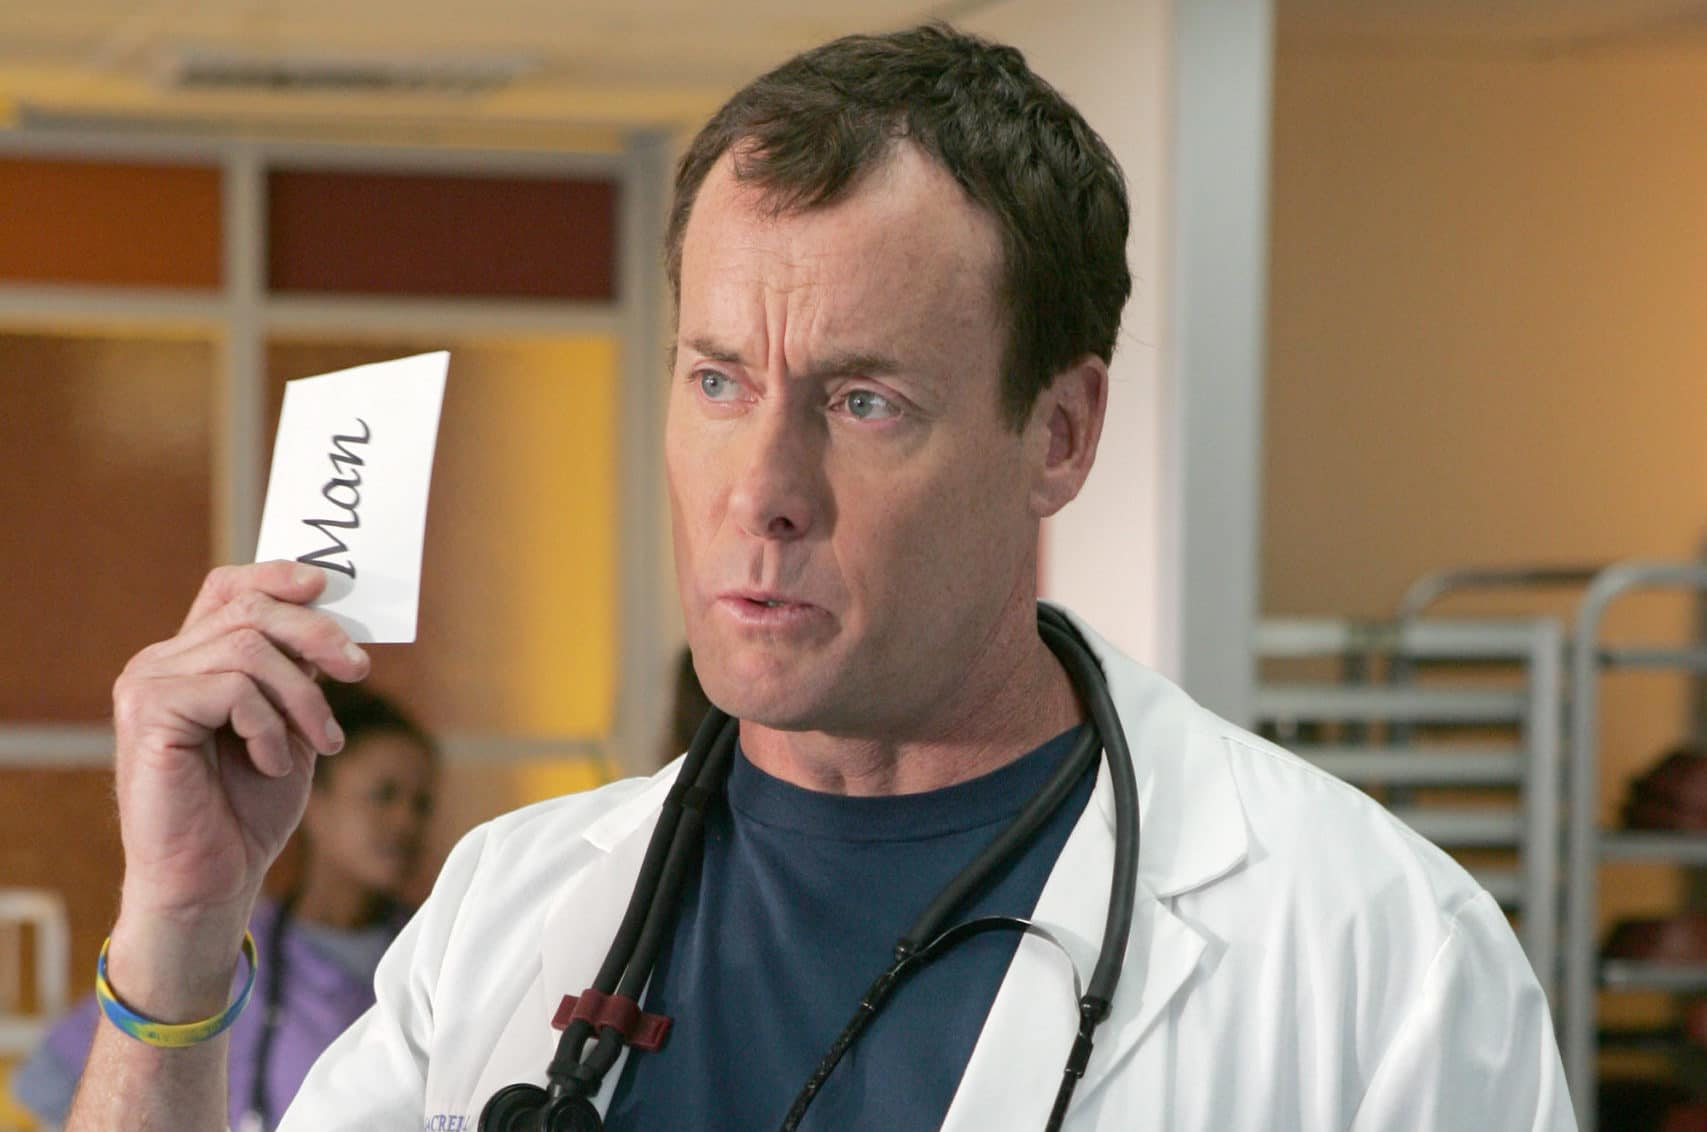 Scrubs: Dr Cox Pictured: John C. McGinley Photo: Justin Lubin ©Touchstone Television. All Rights Reserved.